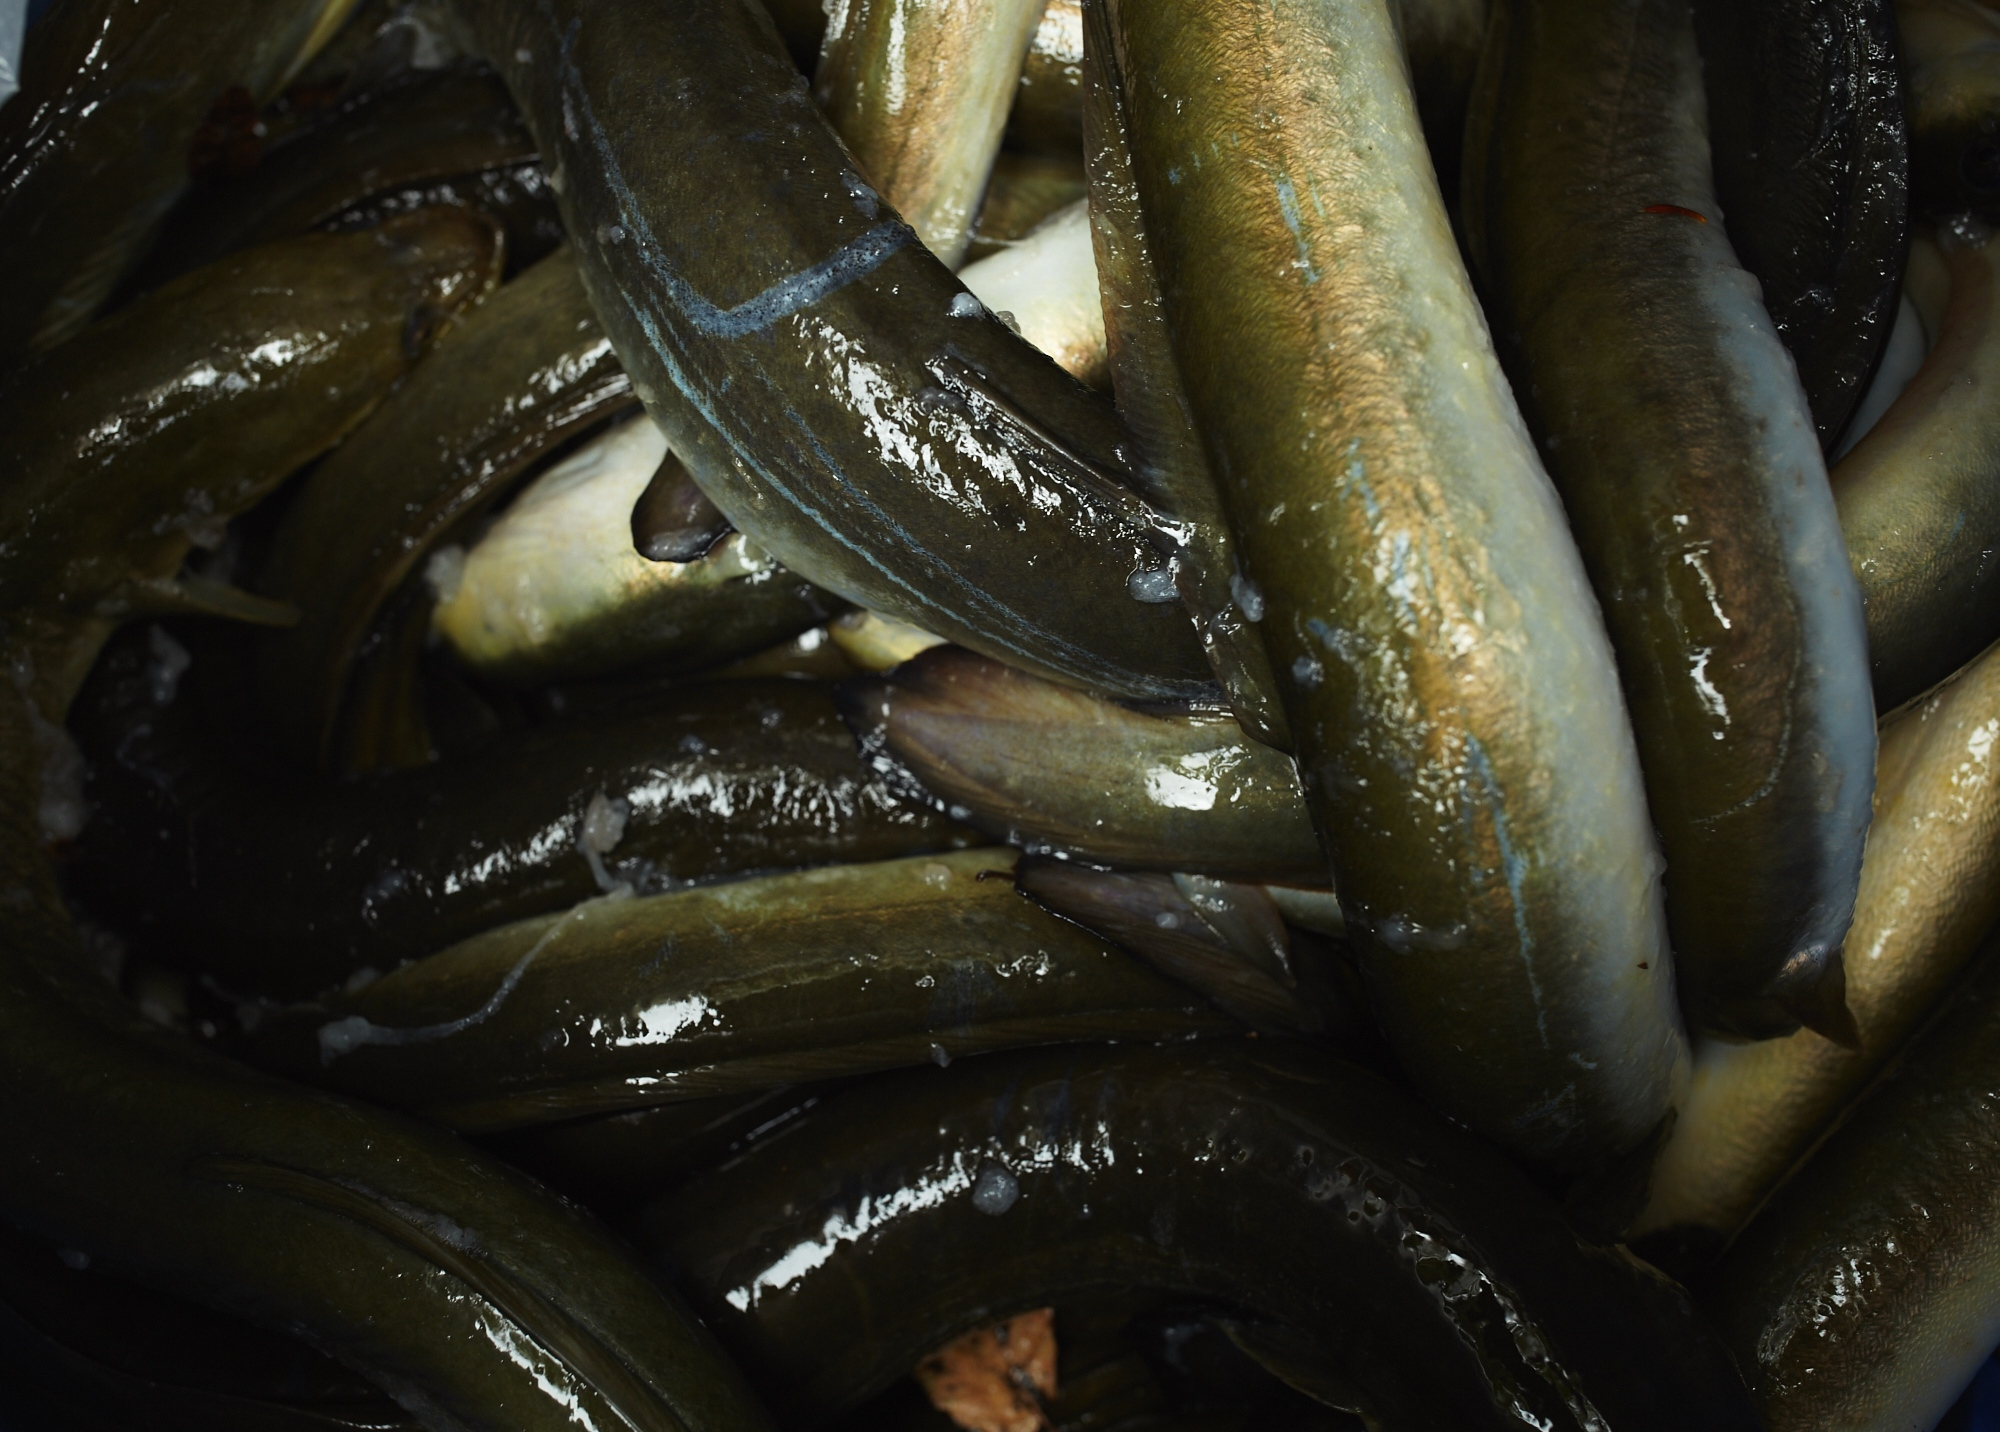 Here a natural mucus, due to fear, coats the eels as they are transported to the freezer. The freezing period plays an important role in the smoking process, by naturally separating the mucus from the eels prior to smoking.